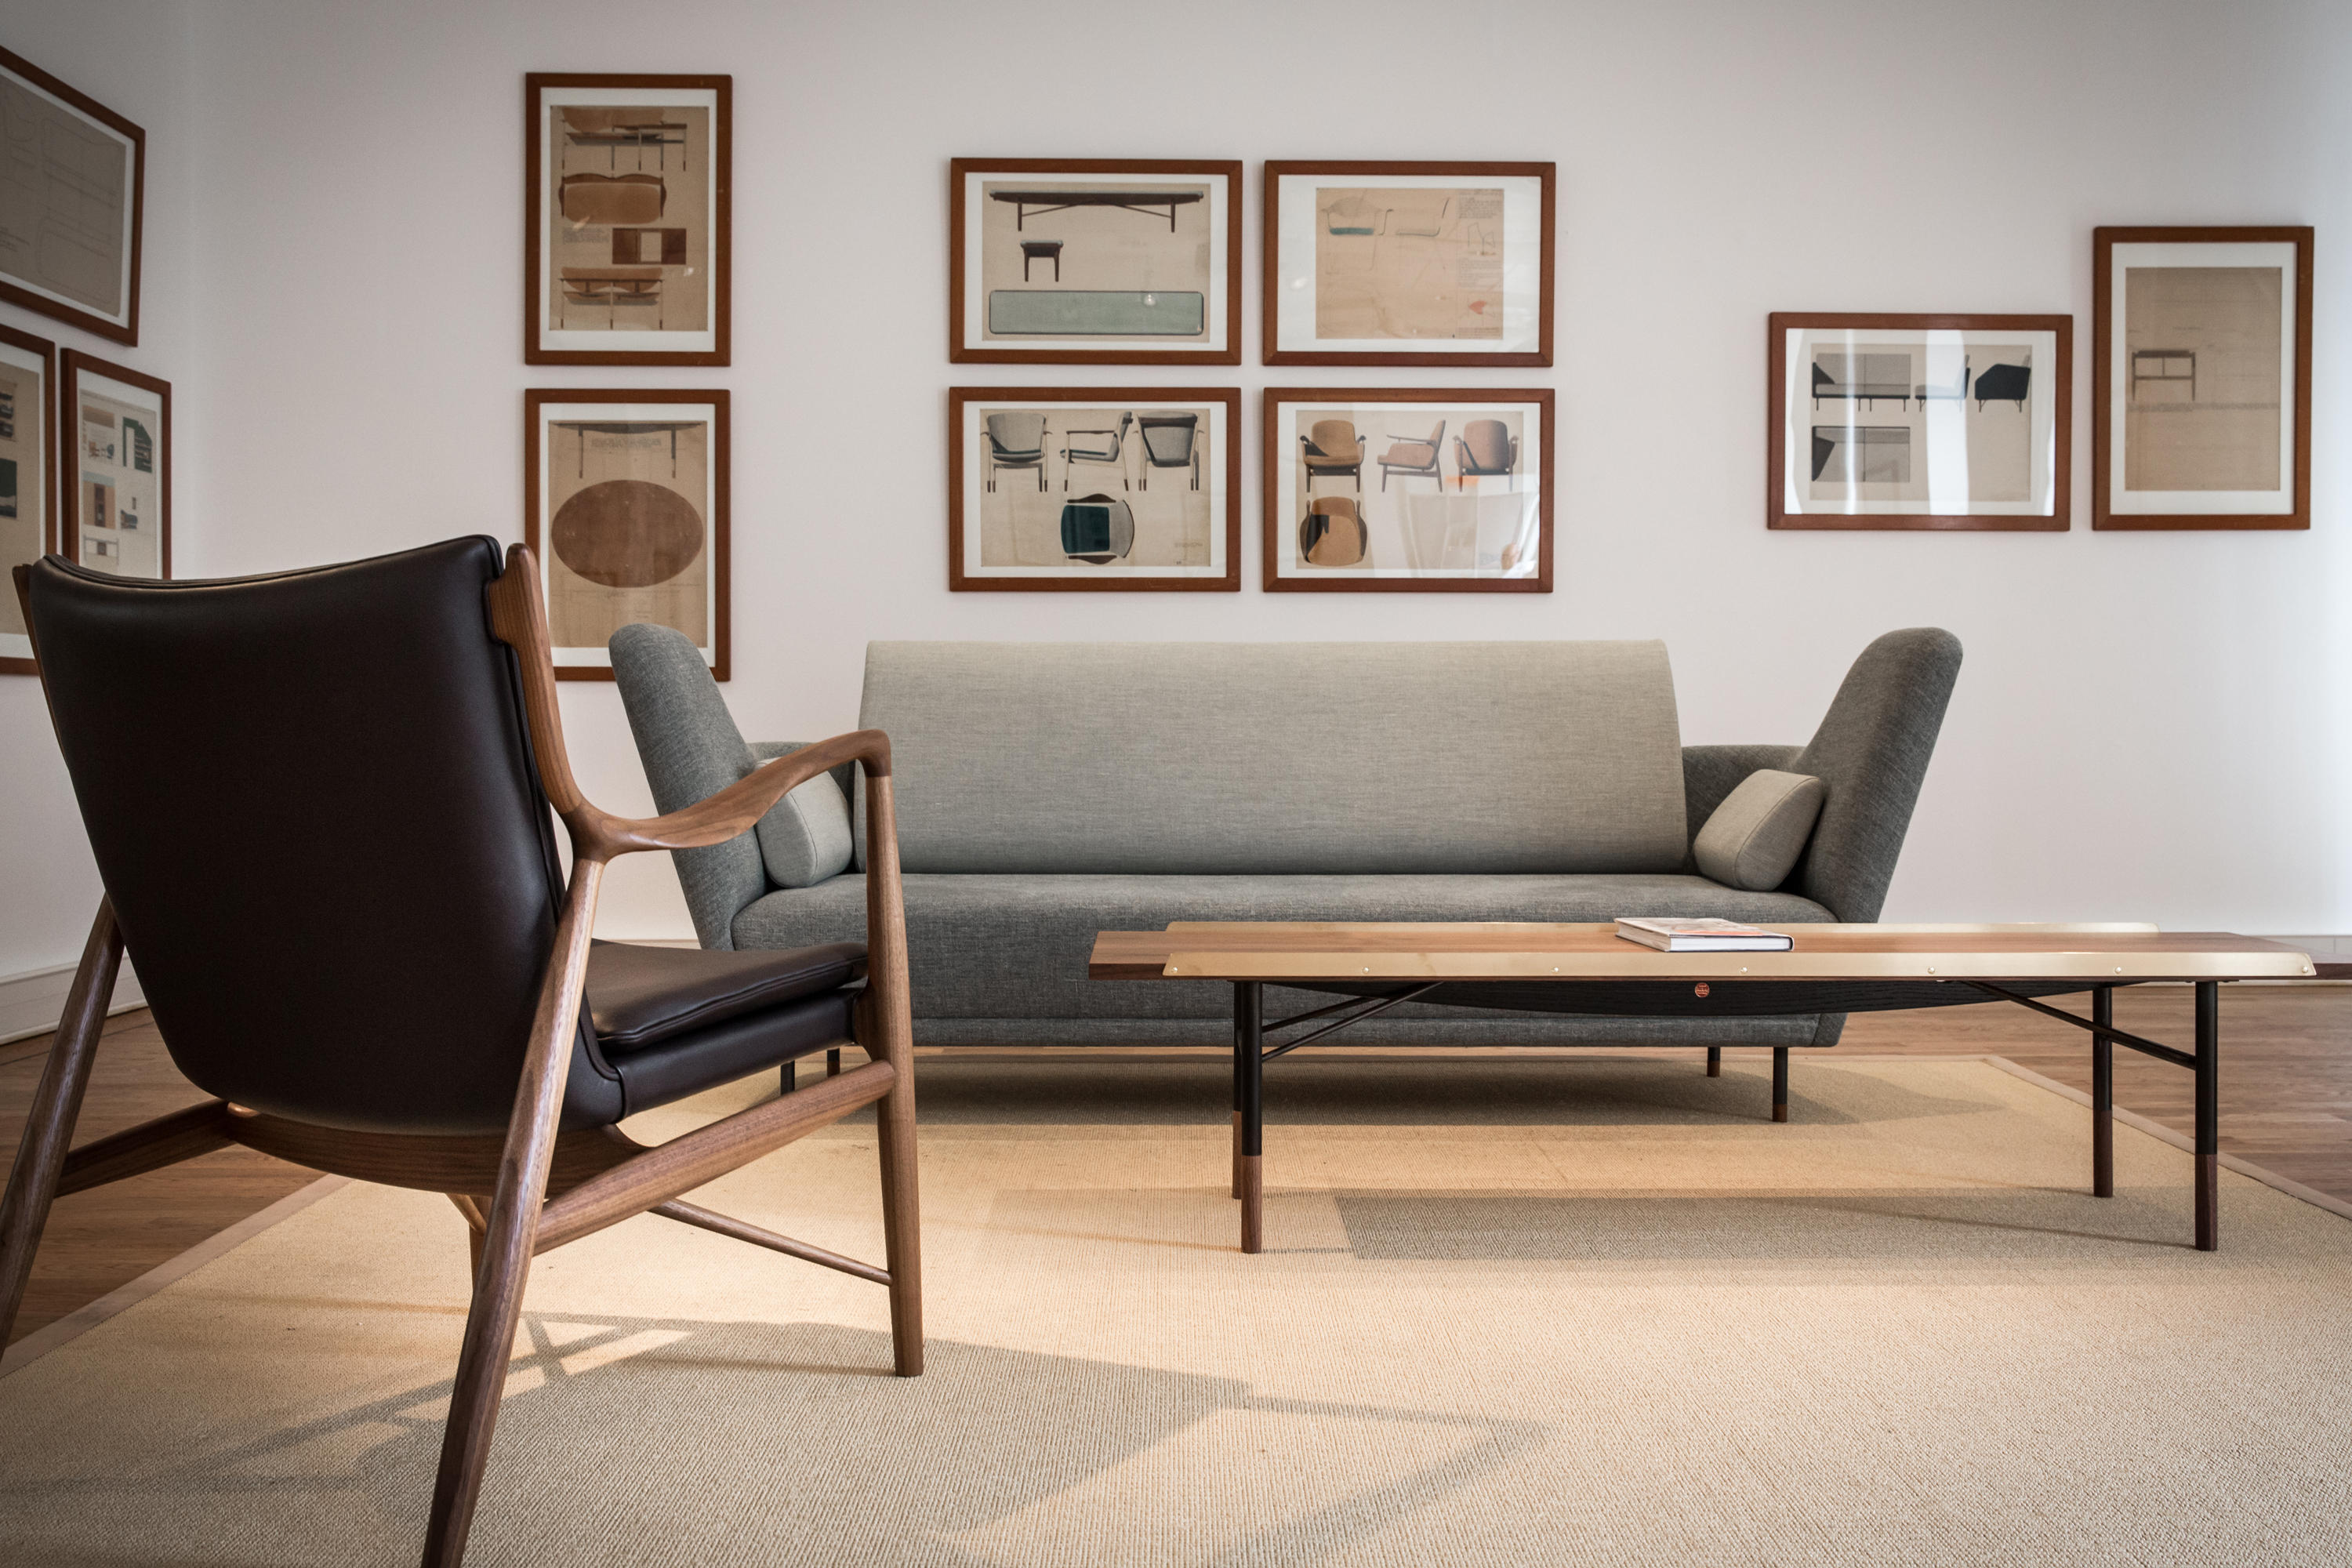 57 SOFA Lounge sofas from onecollection